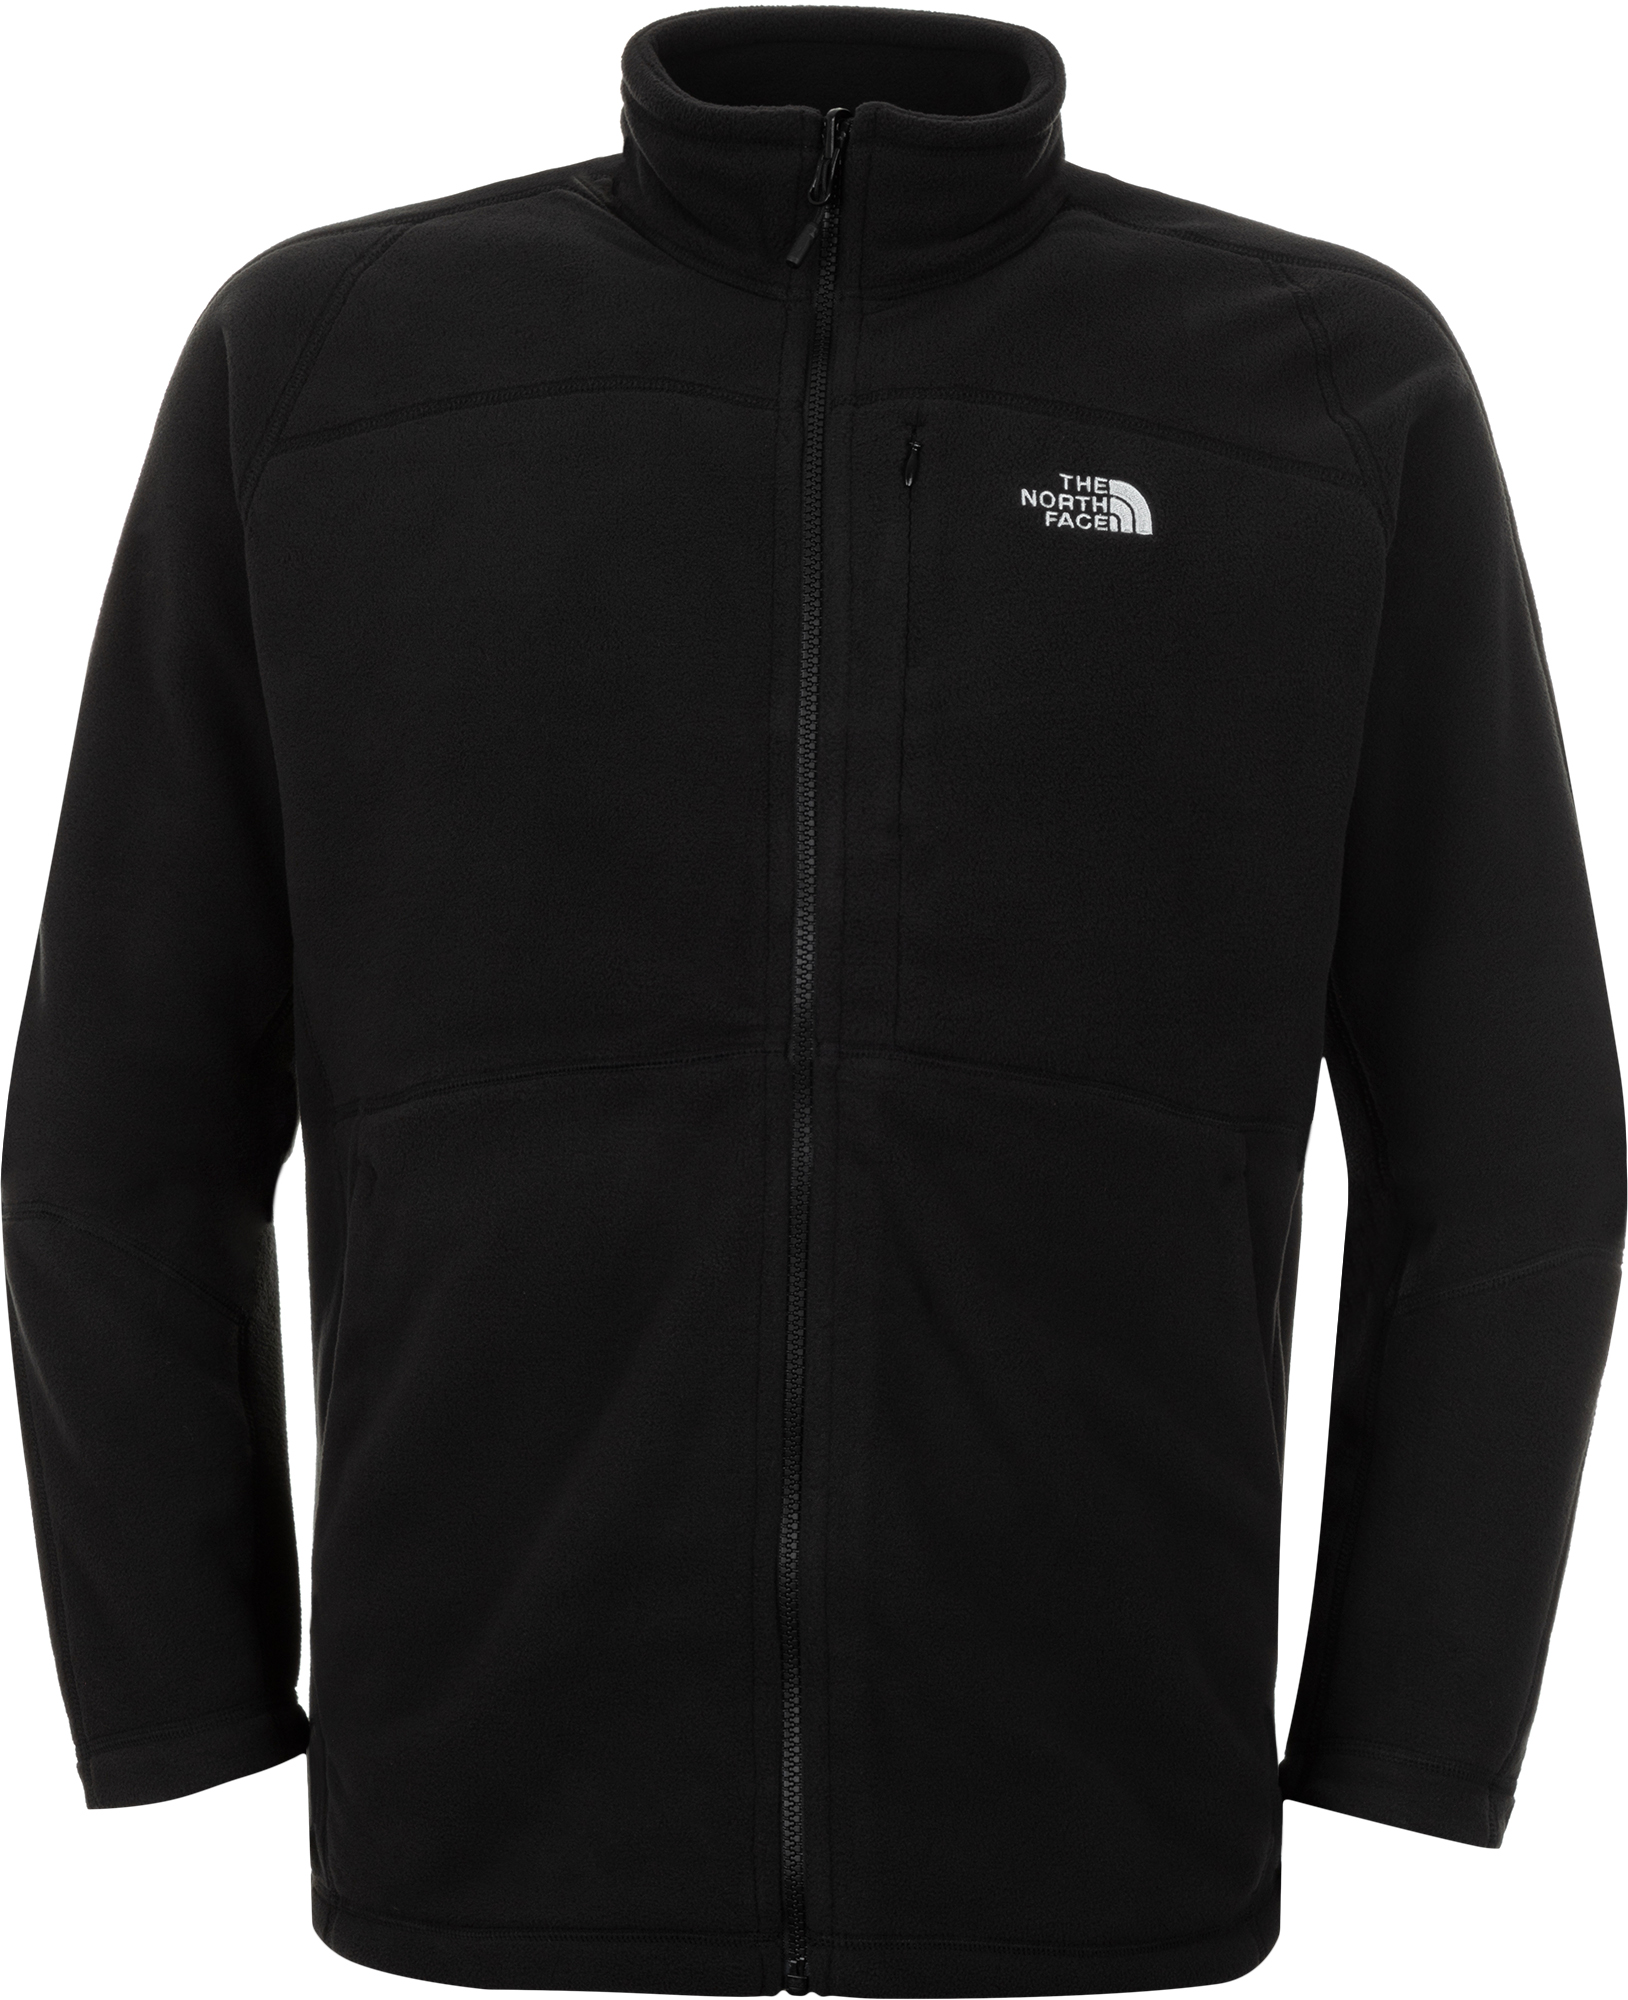 The North Face Джемпер флисовый мужской 200 Shadow, размер 52